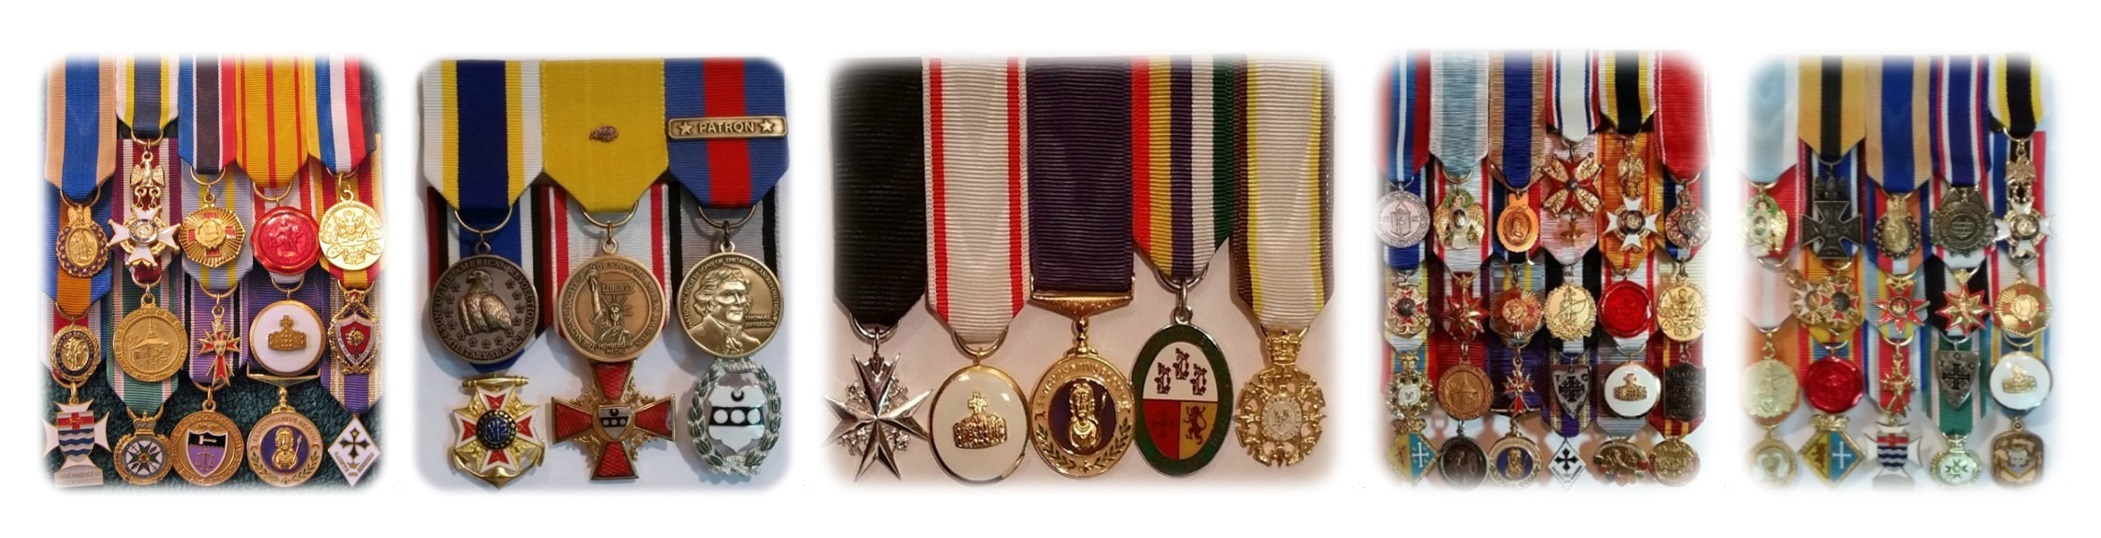 Hereditary Society Medal Set Samples